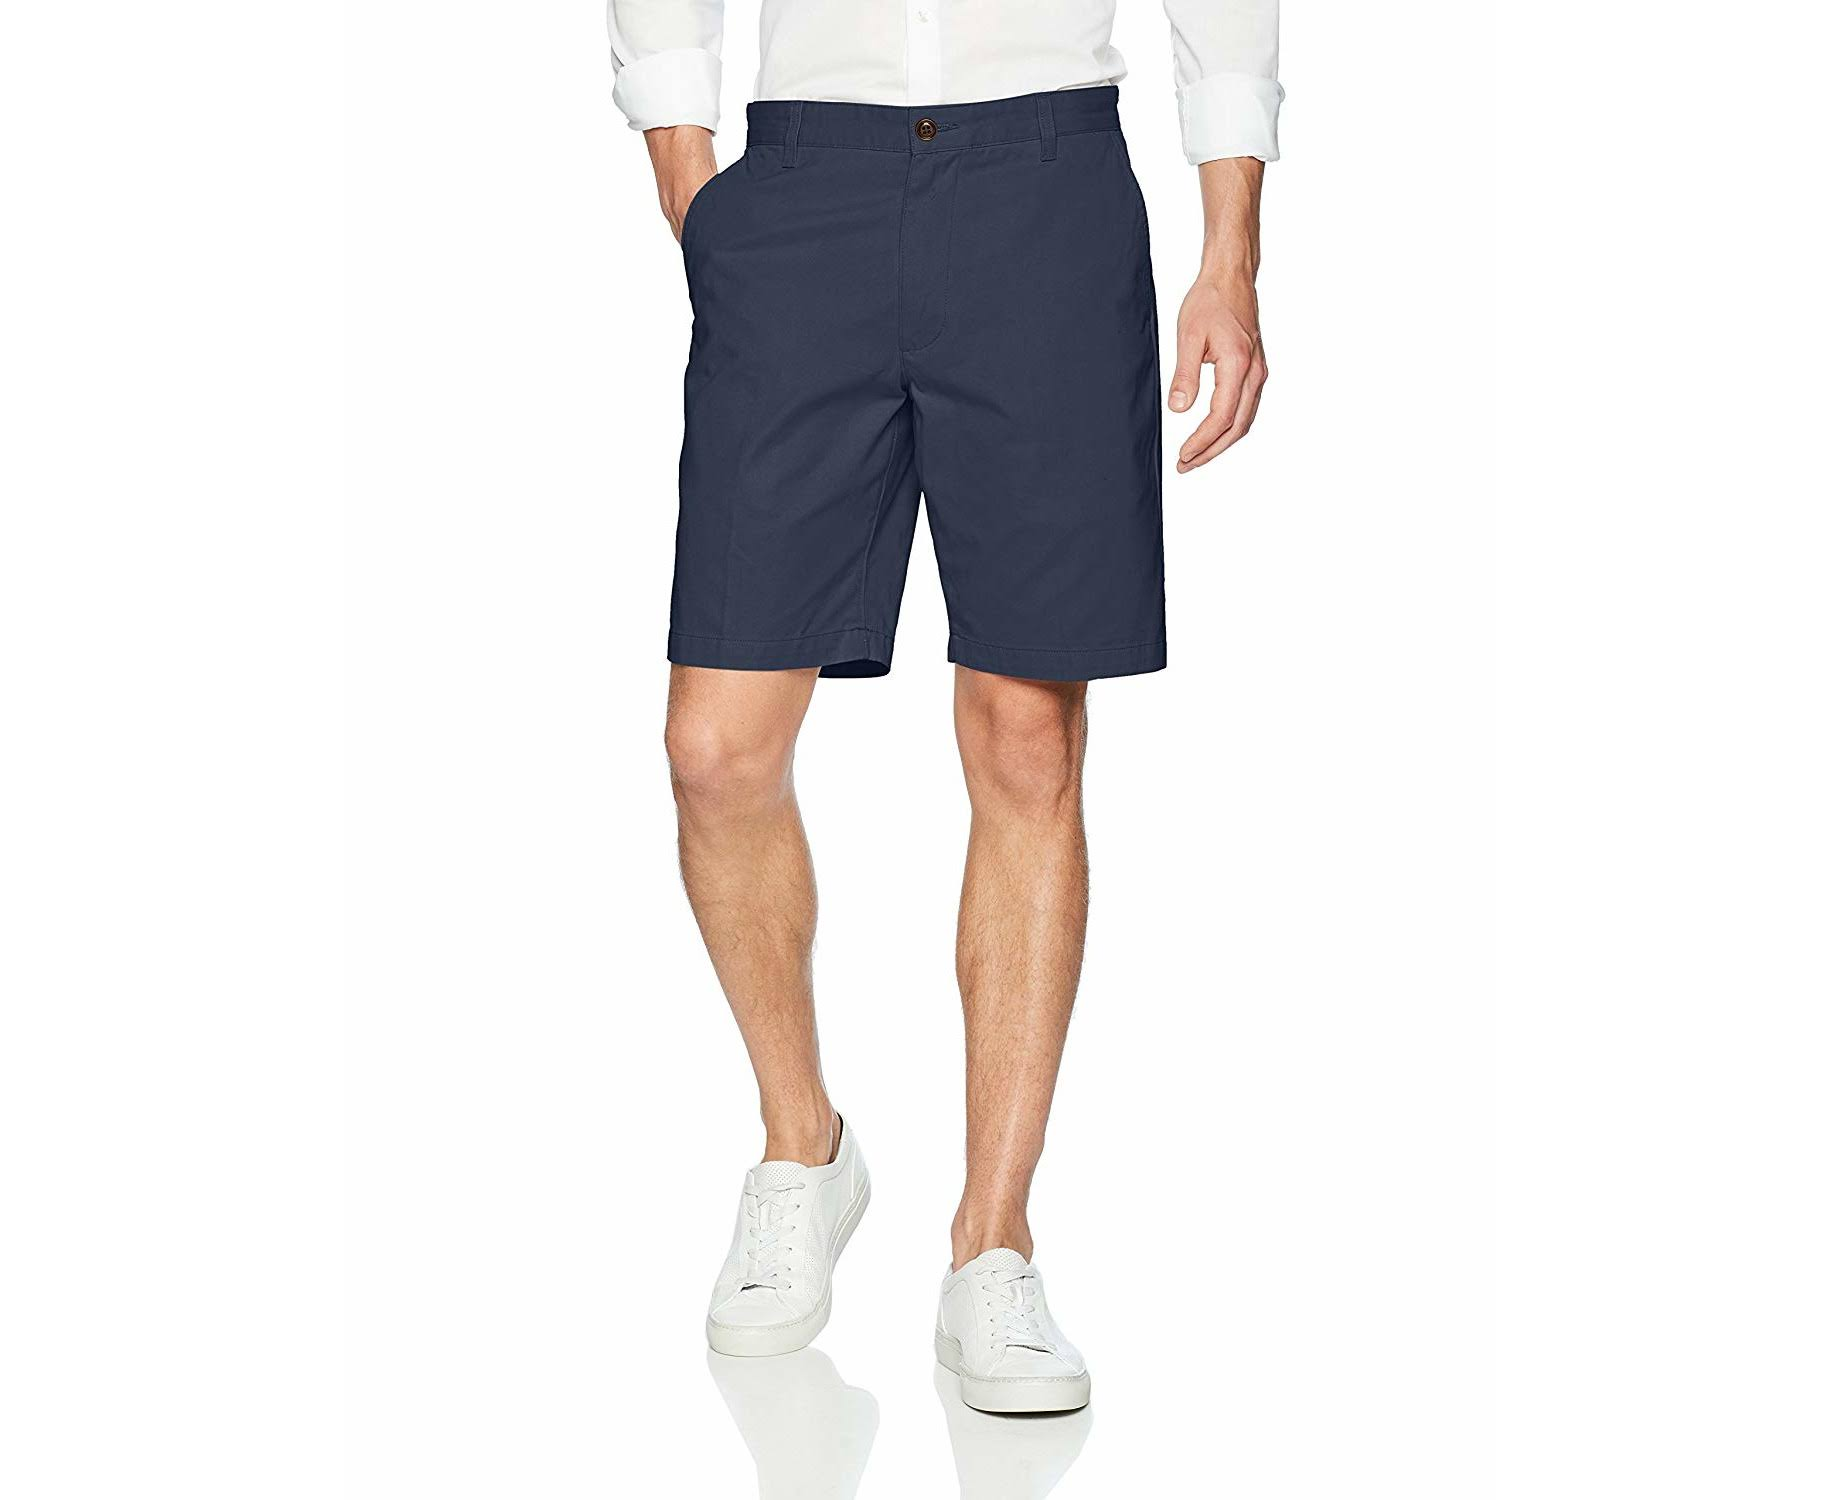 Dockers Men's Classic Fit Perfect Short